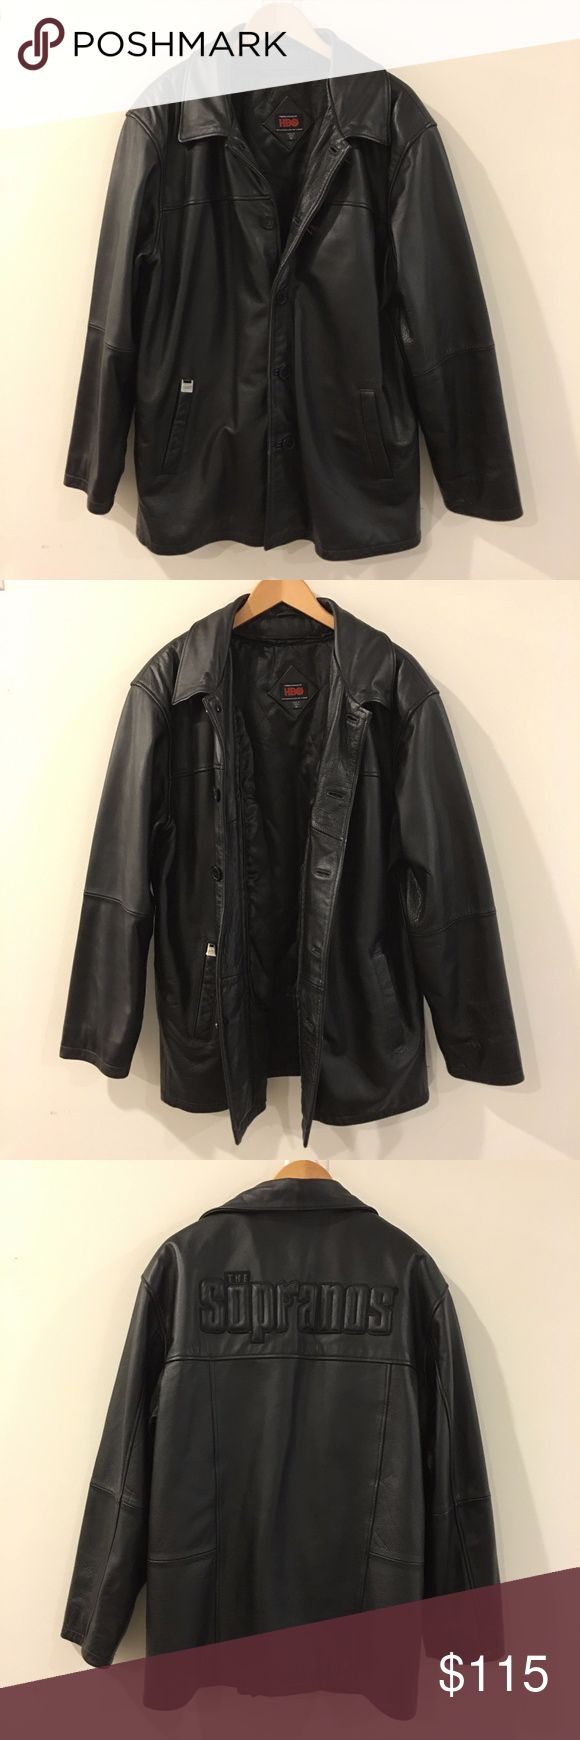 Sopranos HBO Leather Jacket - Size XL Sopranos HBO Leather Jacket - Size XL This is genuine leather and it very heavy for a leather jacket - the jacket is Very Good Condition Exterior - Interior have sign of wear and small damage on the gauche (photo 8). Season: Fall/Winter Pattern: Pebble Back Length: 29inch Underarm to underarm: 23inch Product Code: RN 107744 Country/Region of Manufacture: China Hbo Jackets & Coats Bomber & Varsity